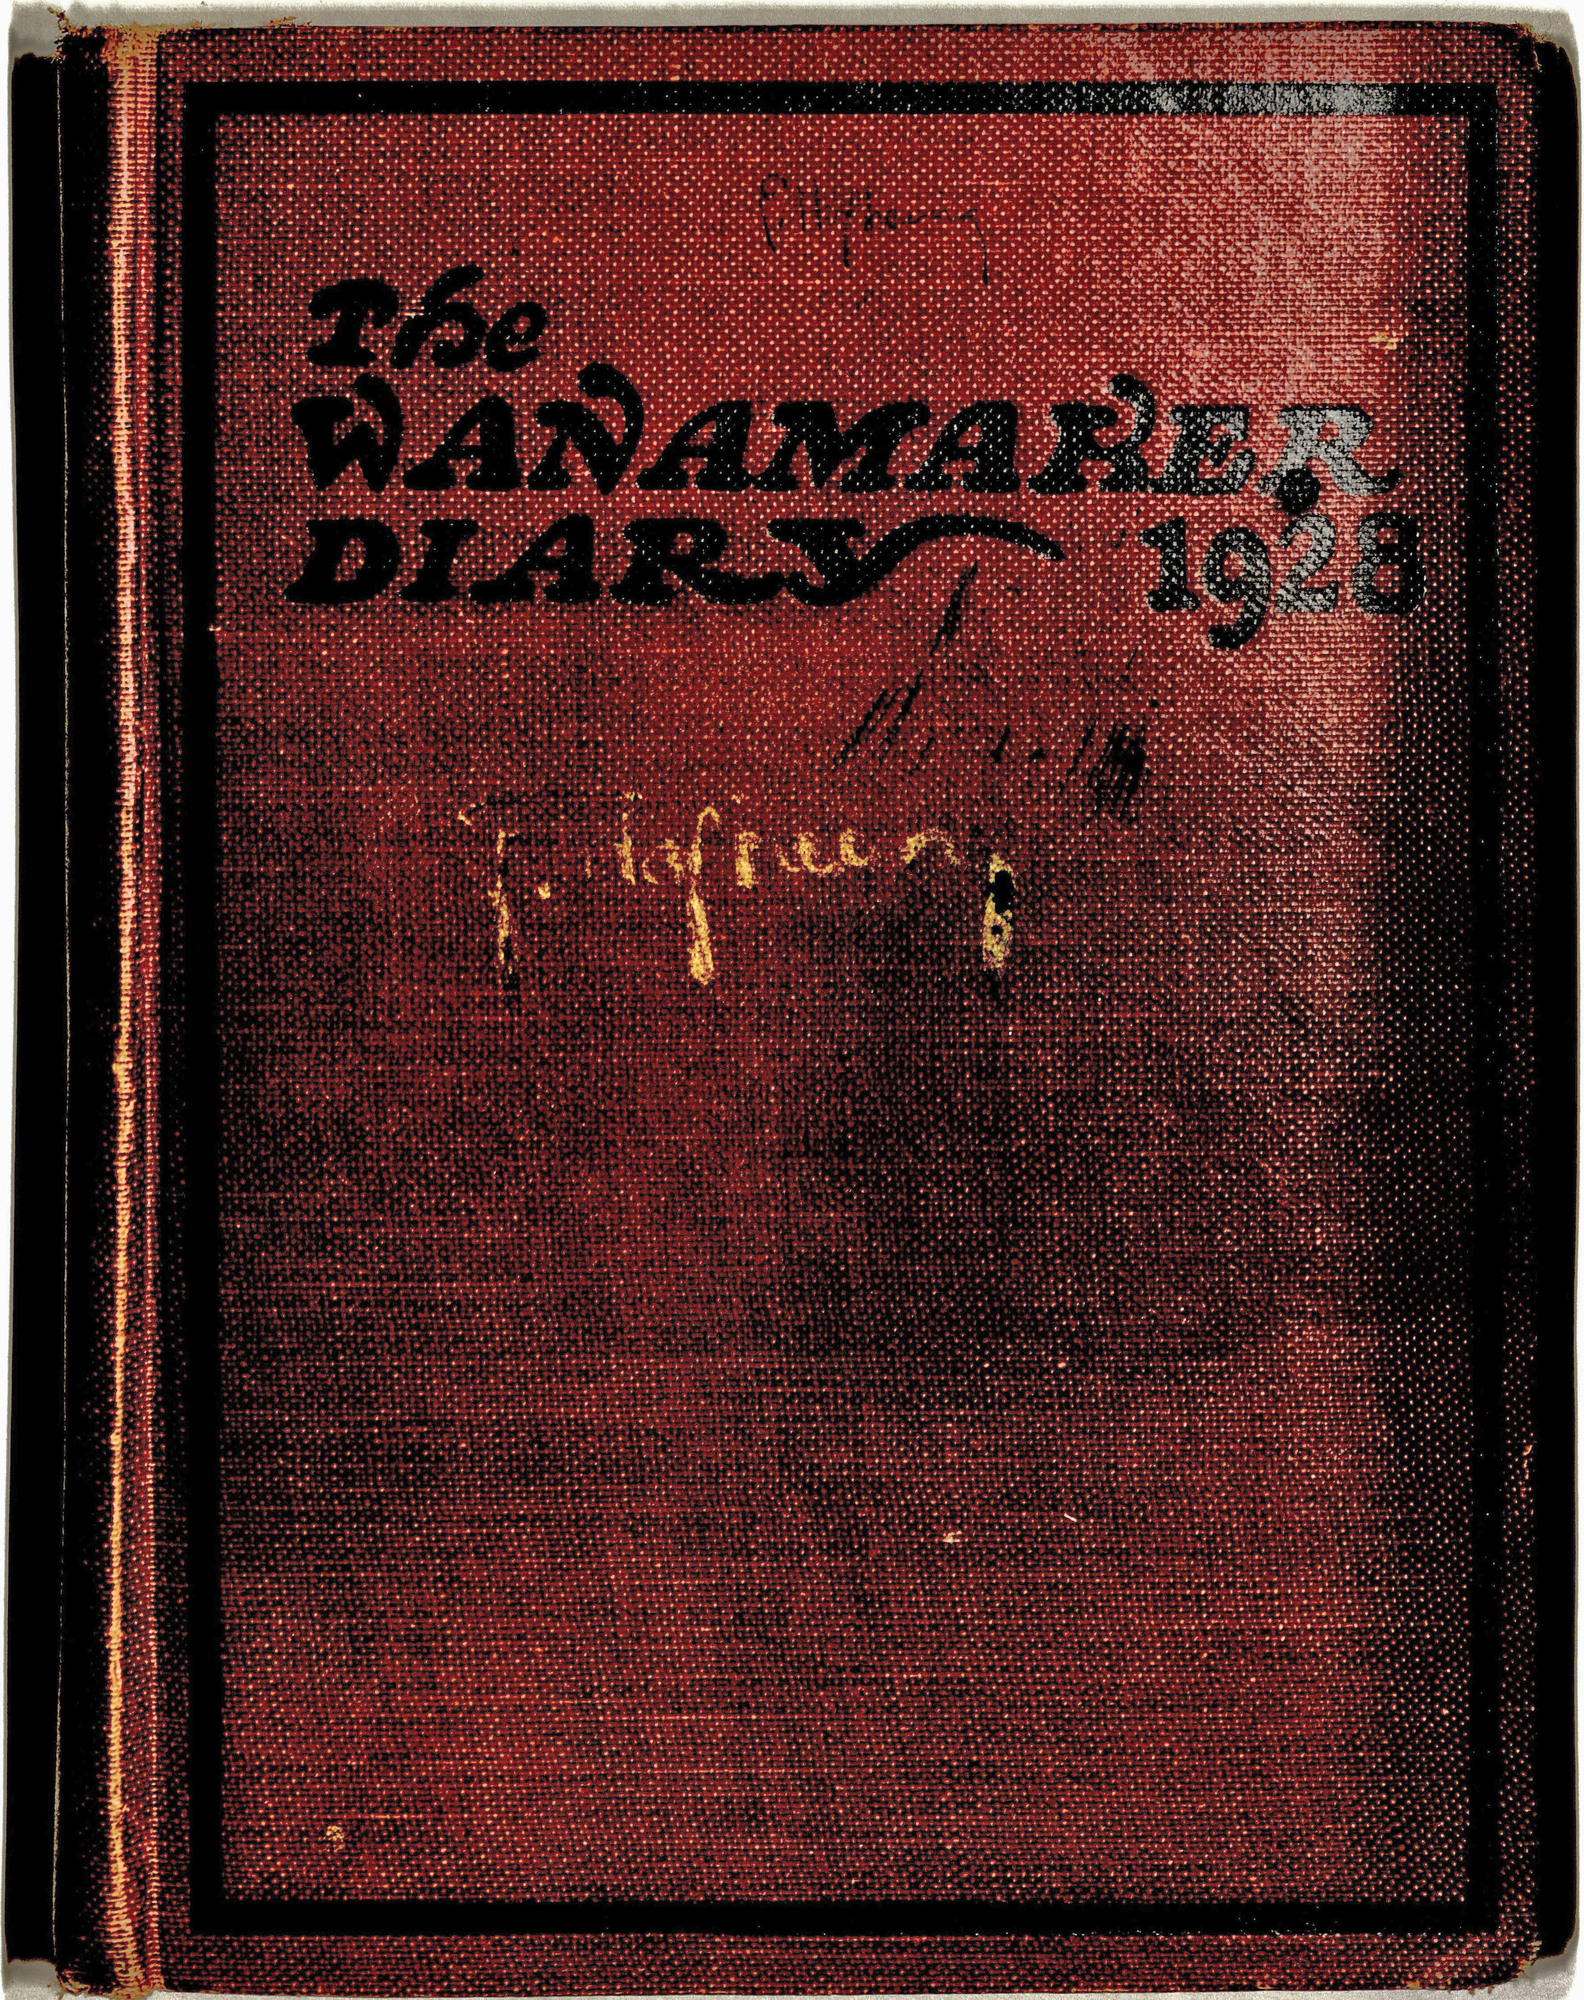 Ms2013-094_Hofheinz_Diary_FrontCover.jpg